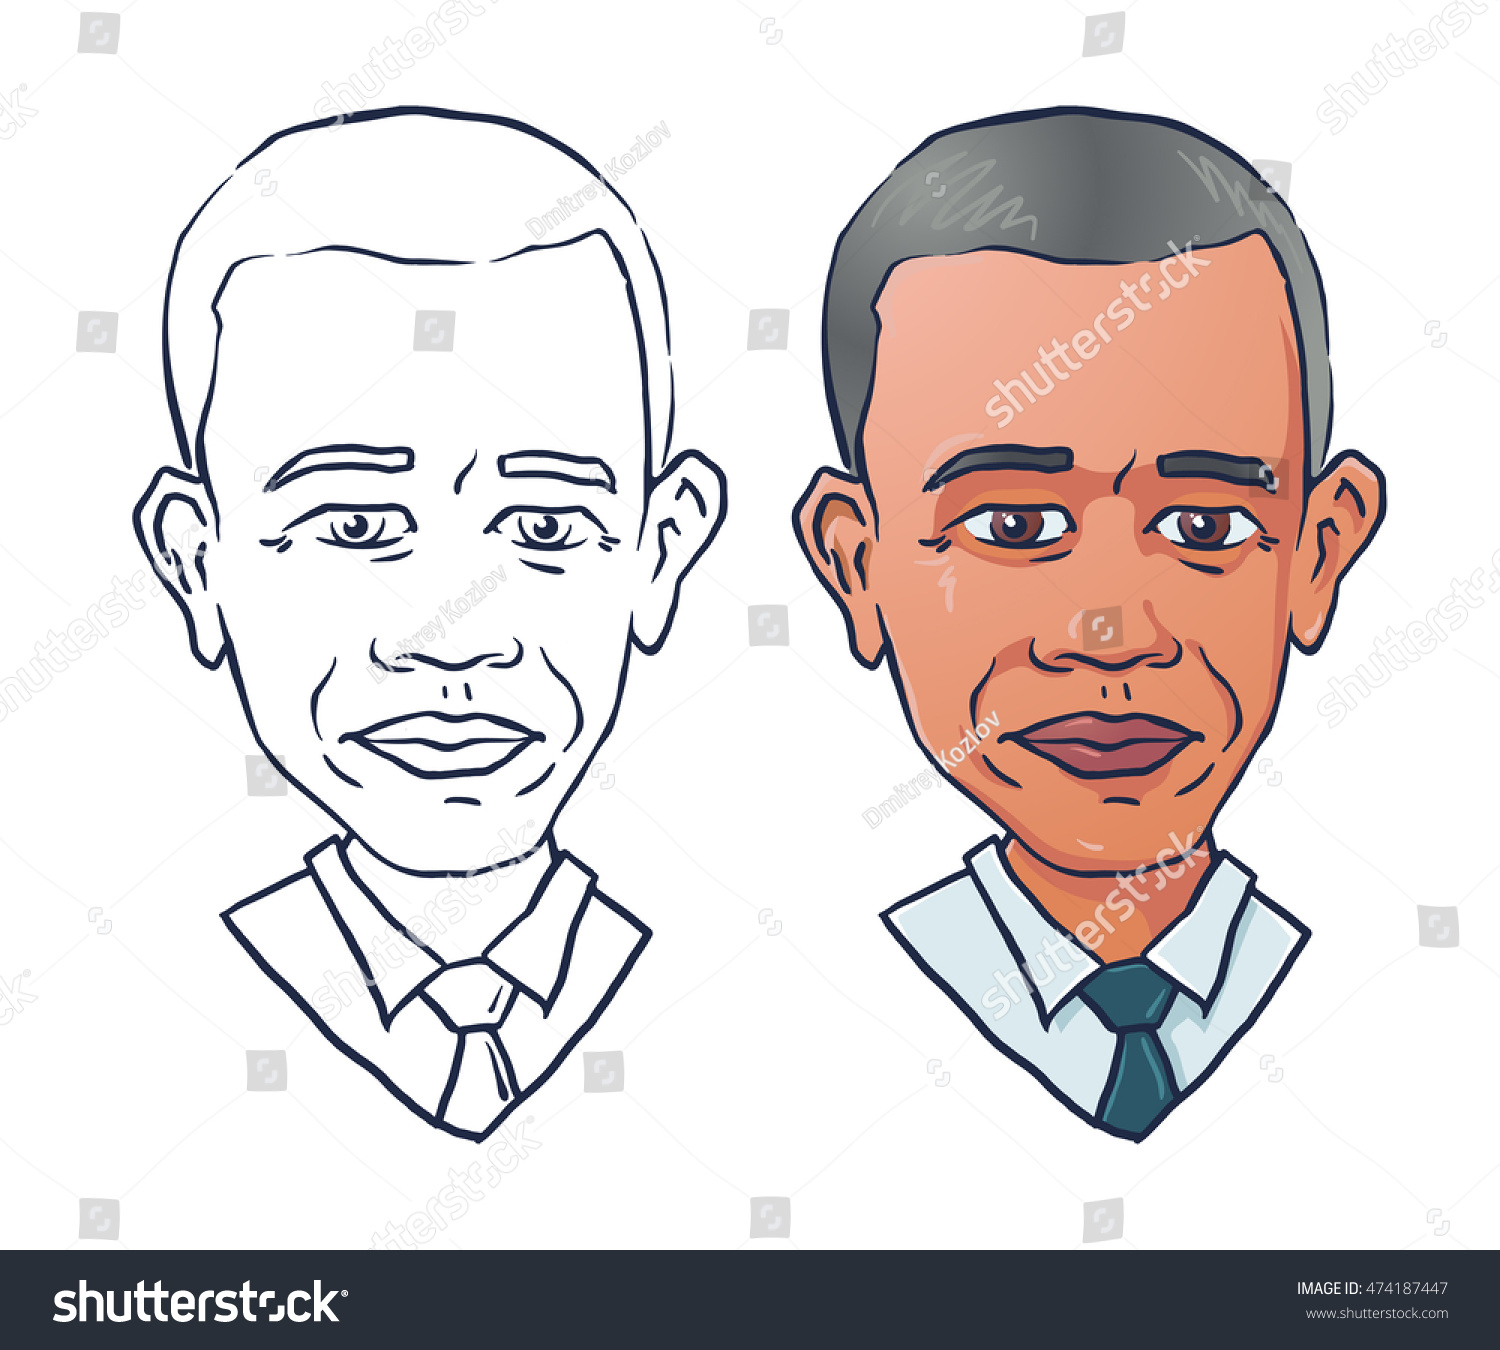 1500x1350 Cartoon Drawing Of Obama Cartoon Portrait United States President